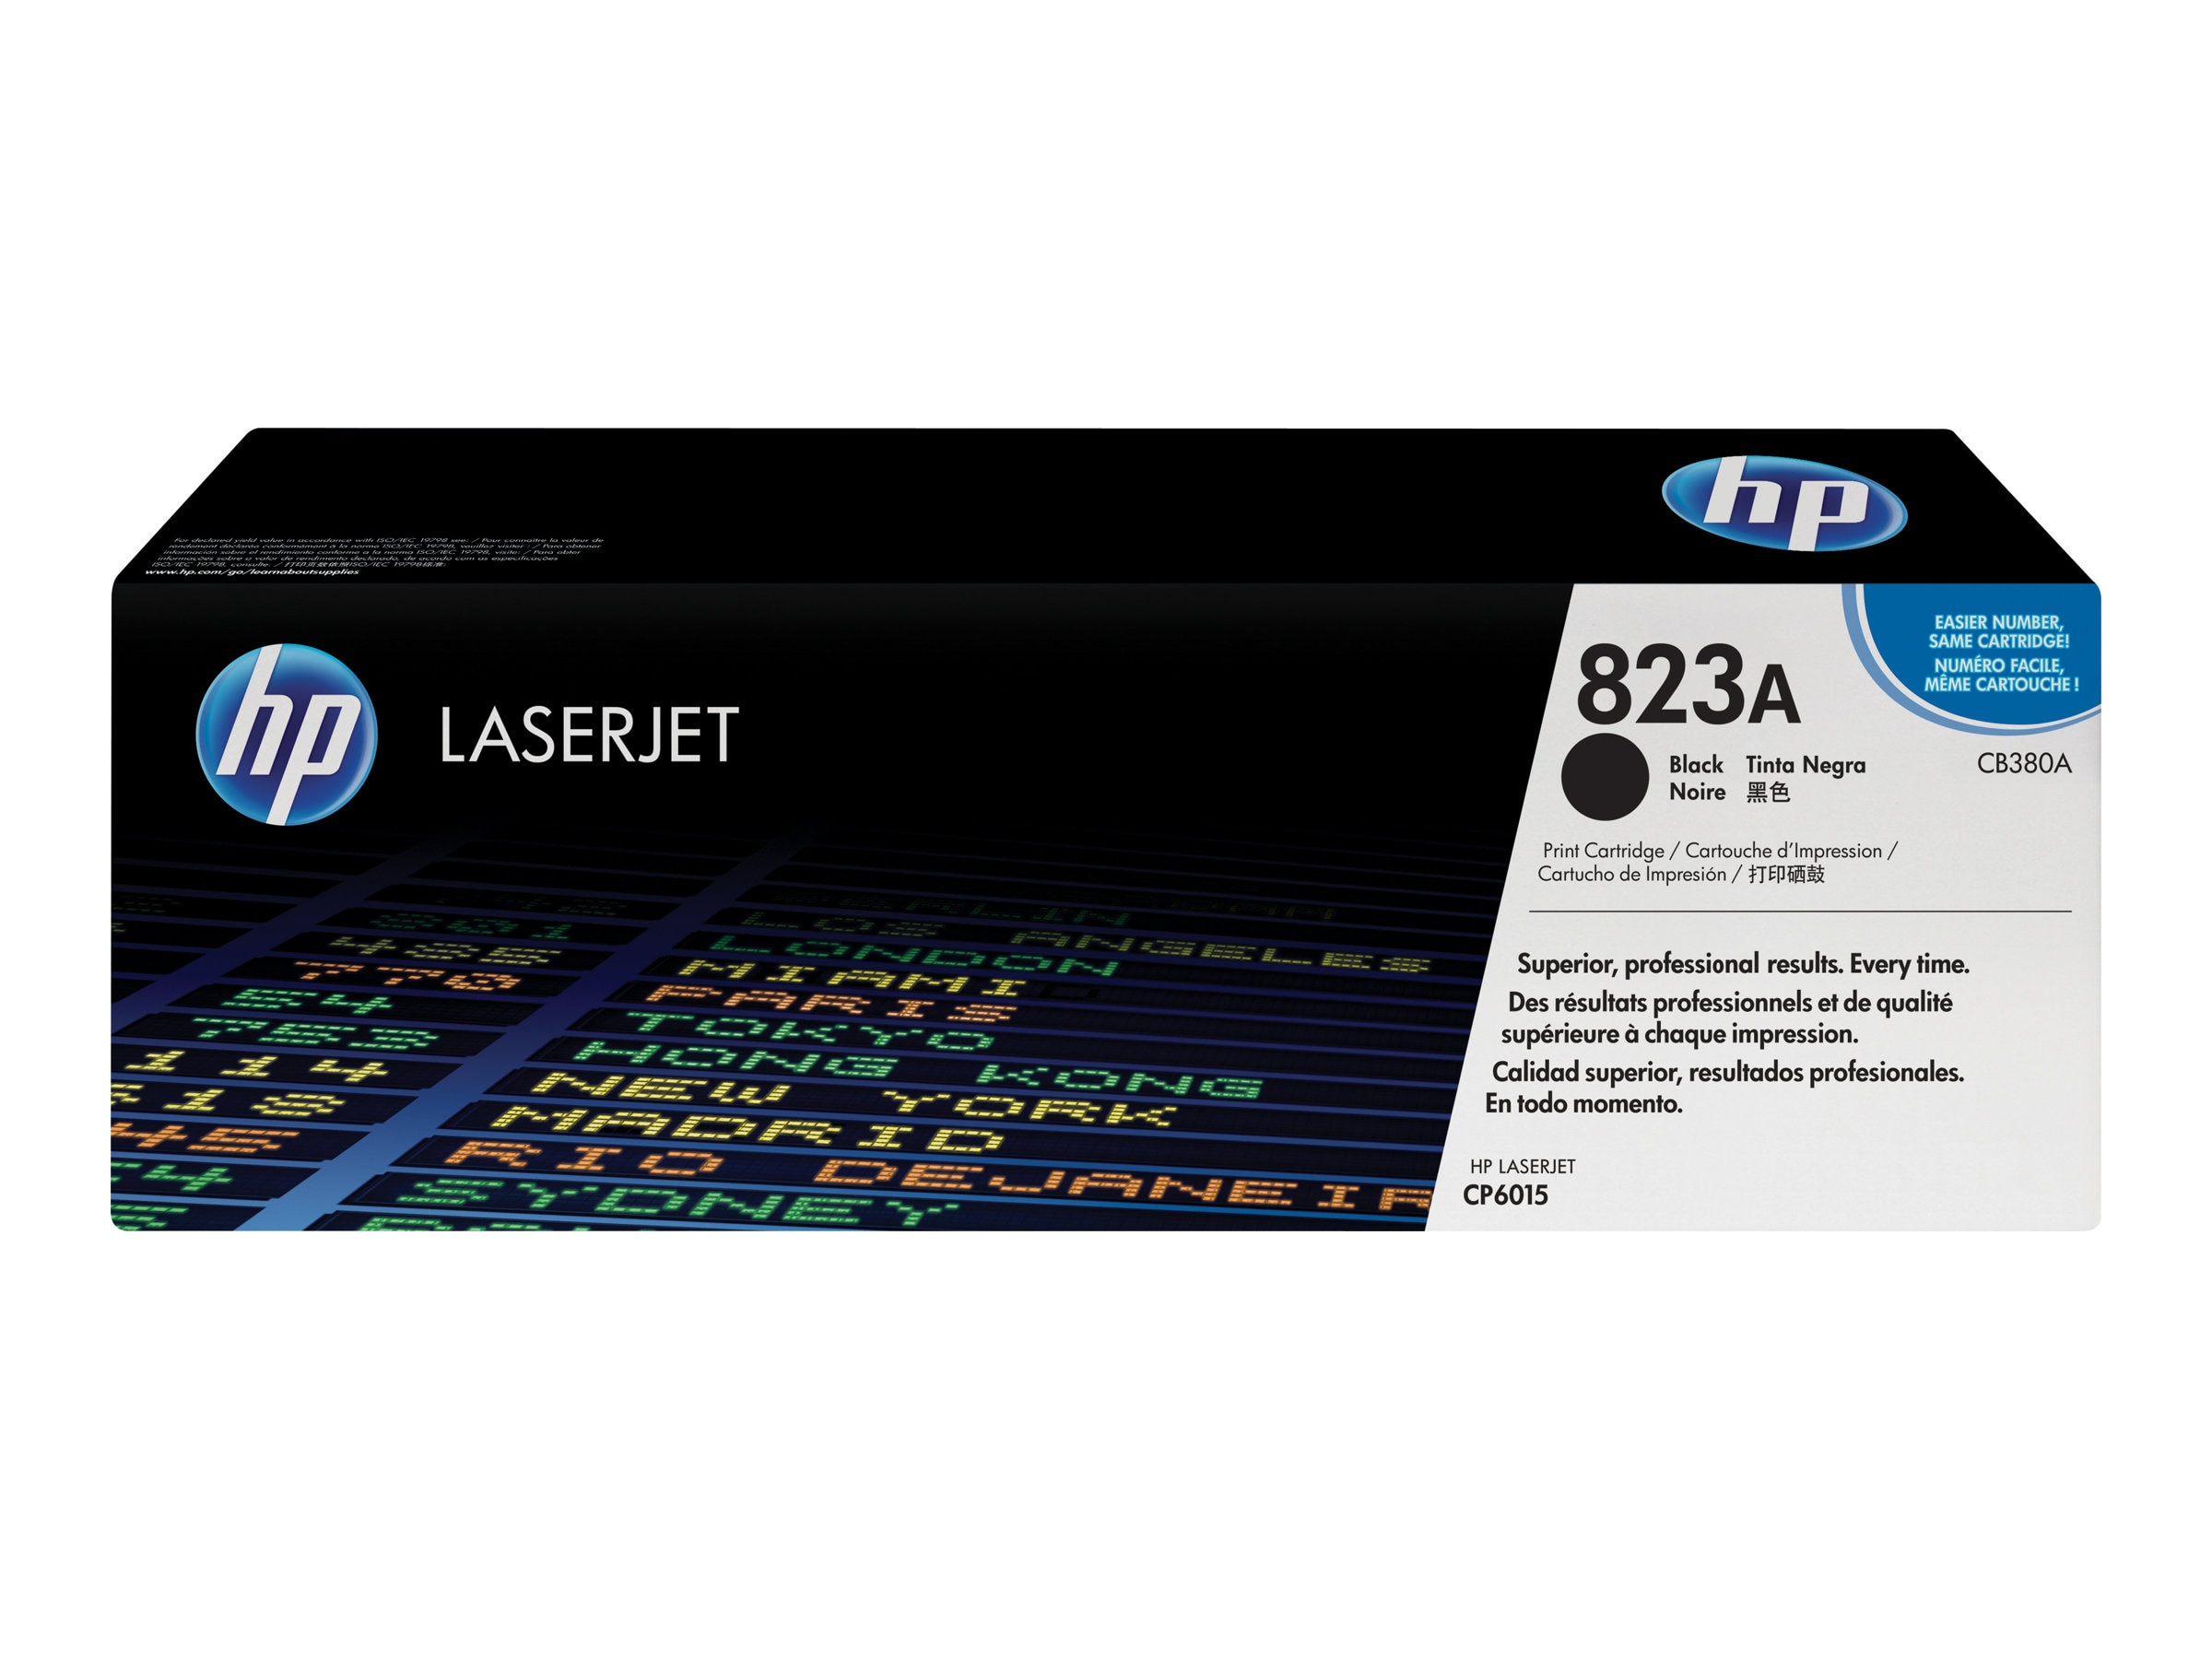 HP 823A (CB380A) Black Original LaserJet Toner Cartridge for HP Color LaserJet CP6015 Printers